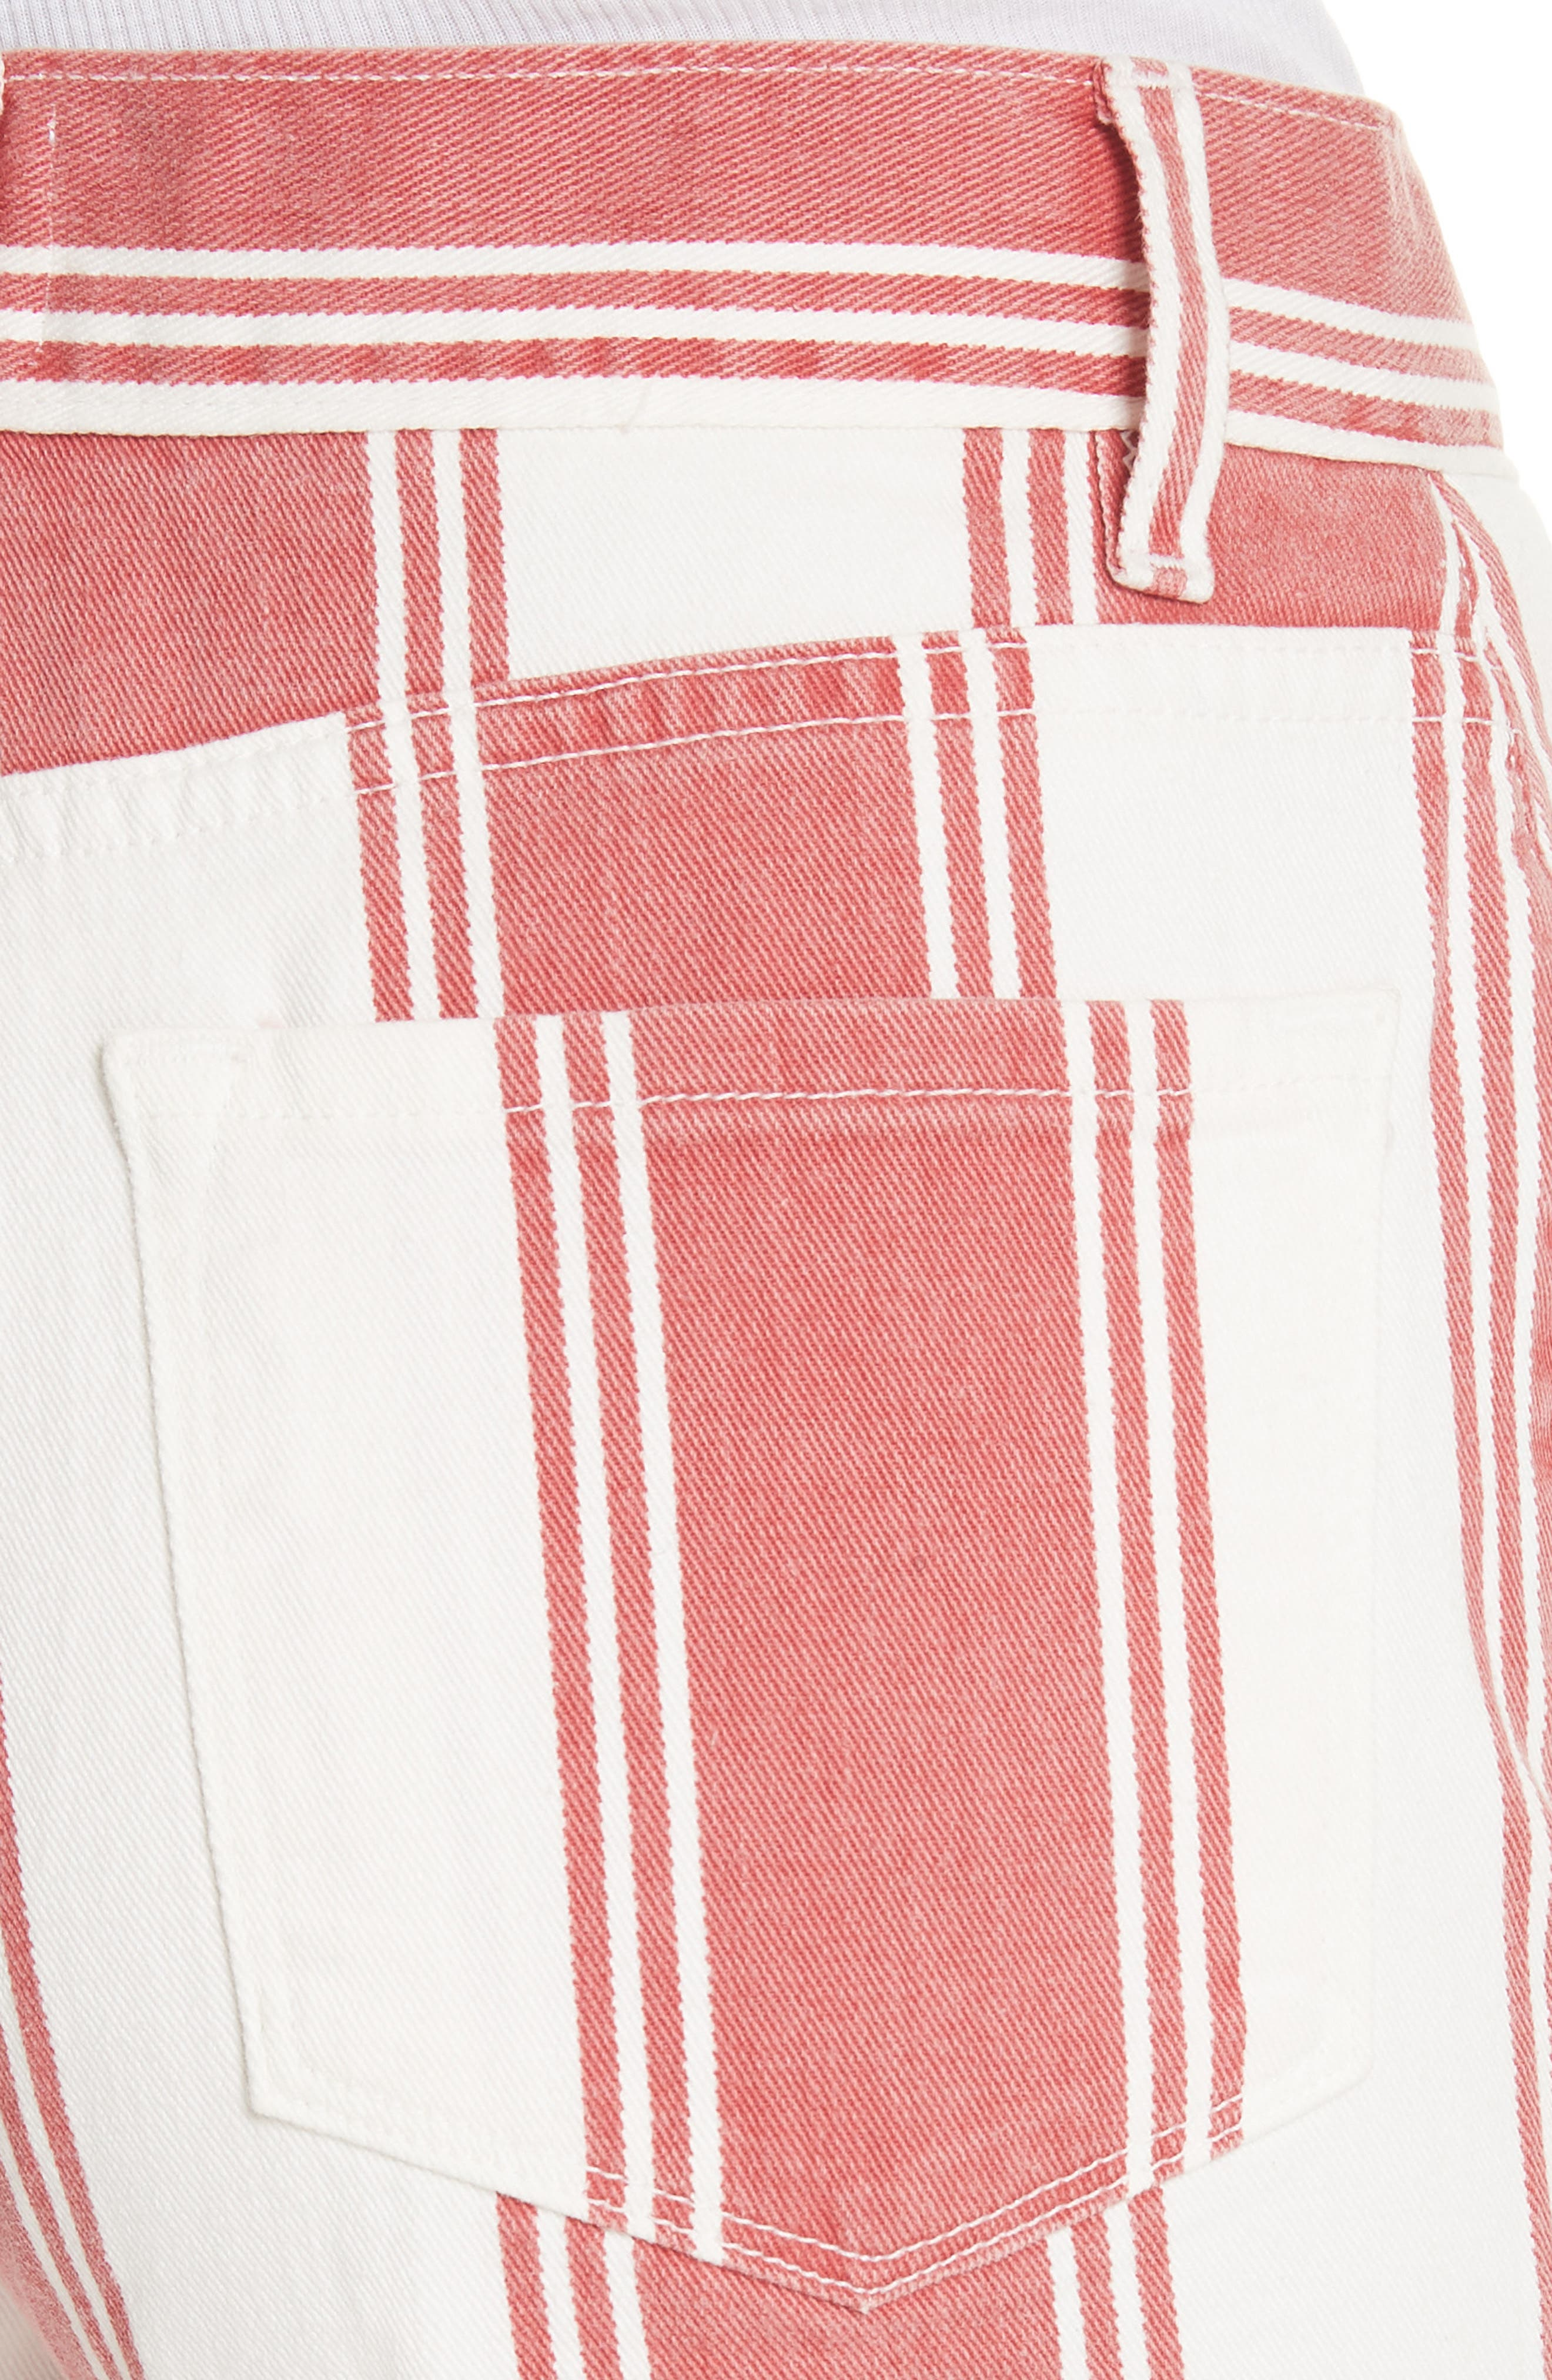 Vintage Stripe Crop Jeans,                             Alternate thumbnail 4, color,                             FIERY STRIPE